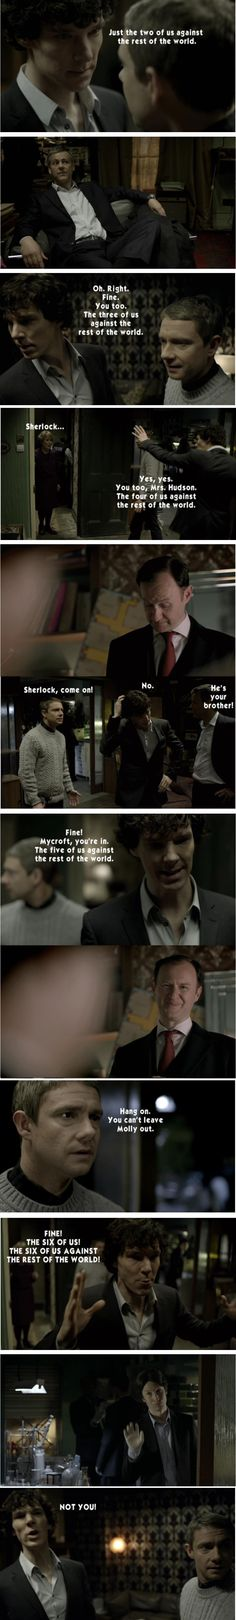 Sherlock's only willing to be persuaded so far. Anderson will just lower the IQ of the whole group!